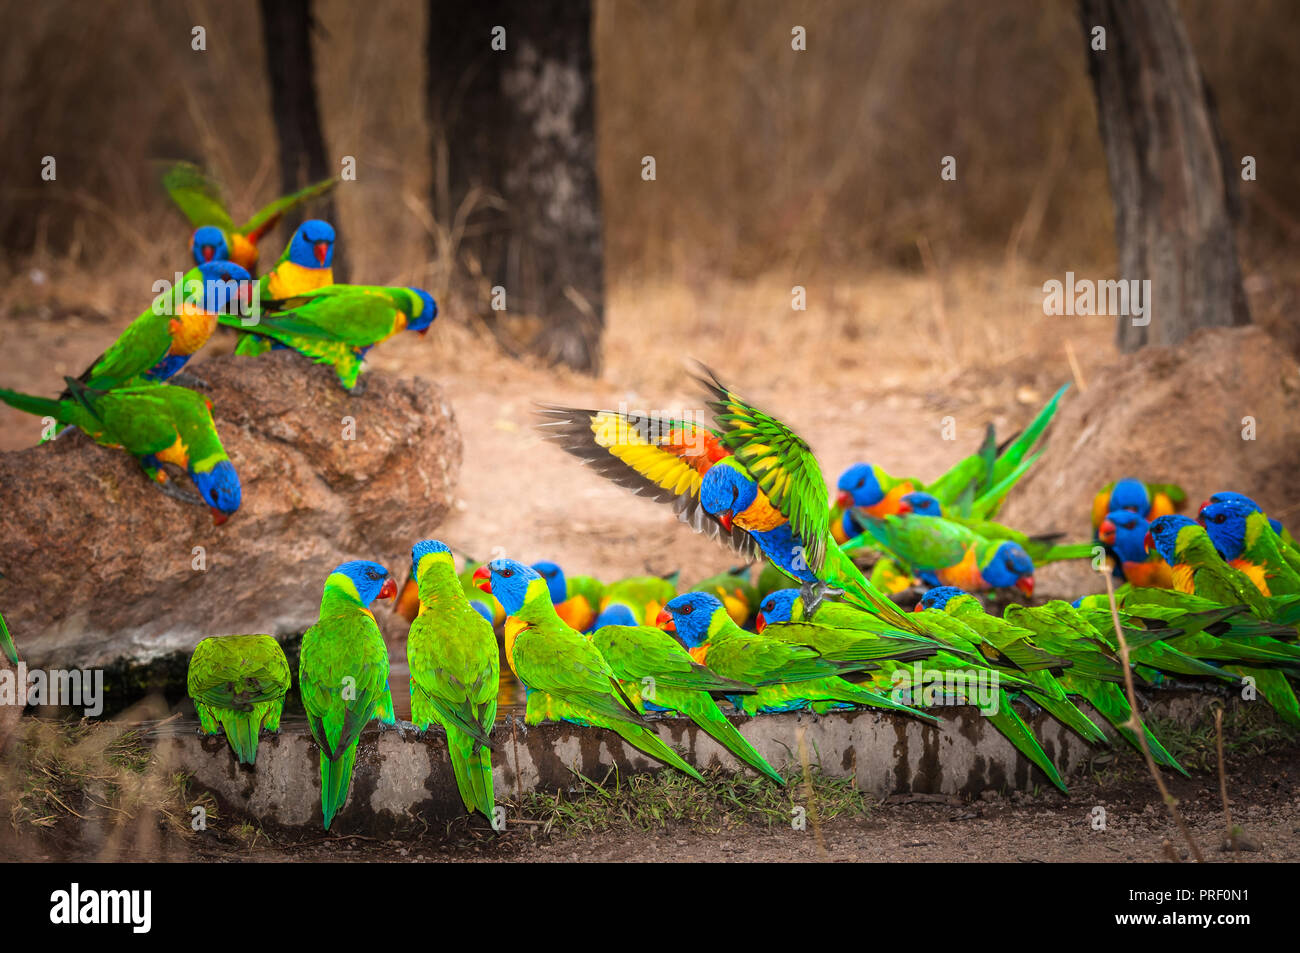 Ever alert a flock of Rainbow Lorikeets settle tentatively on an outback waterhole ready to quench their thirst. - Stock Image